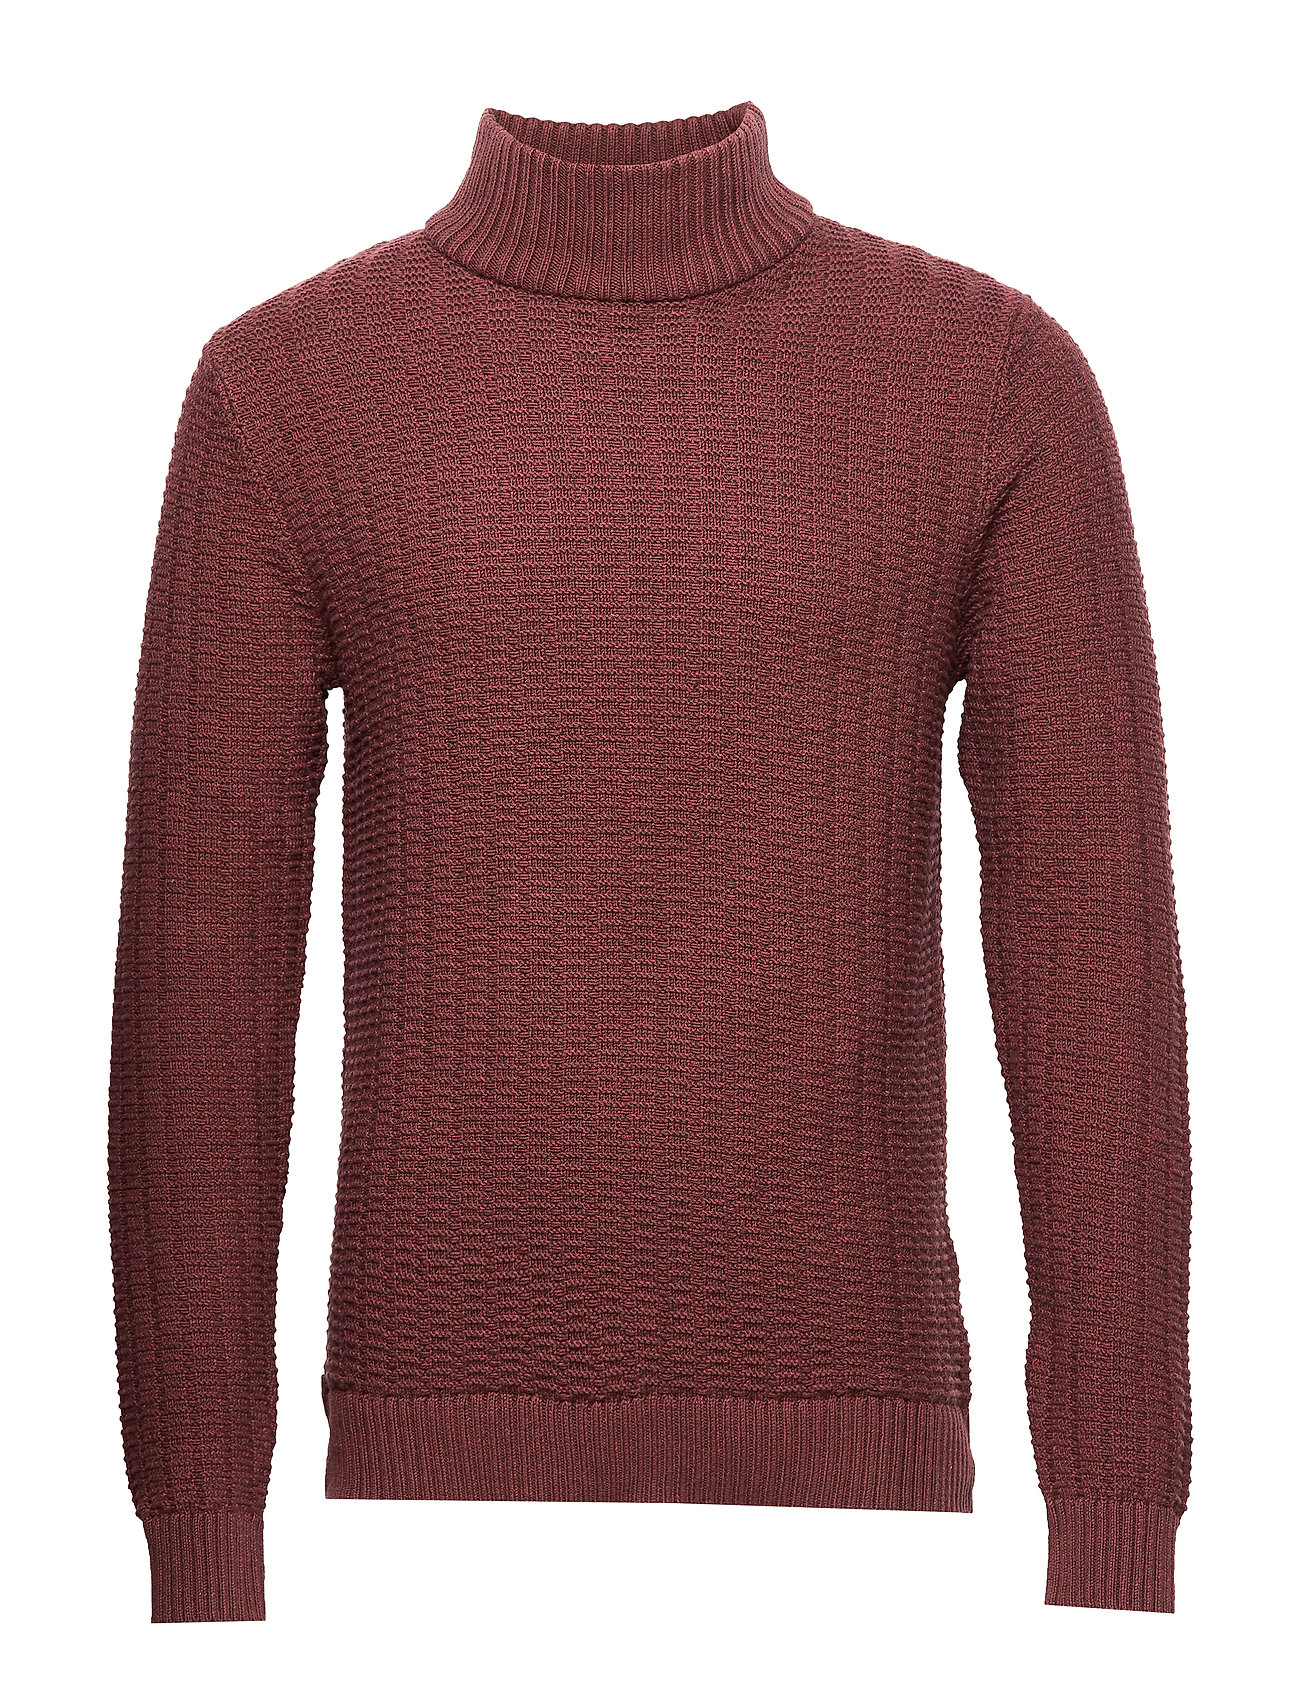 Selected Homme SLHROLF STRUCTURE HIGH NECK W - ANDORRA